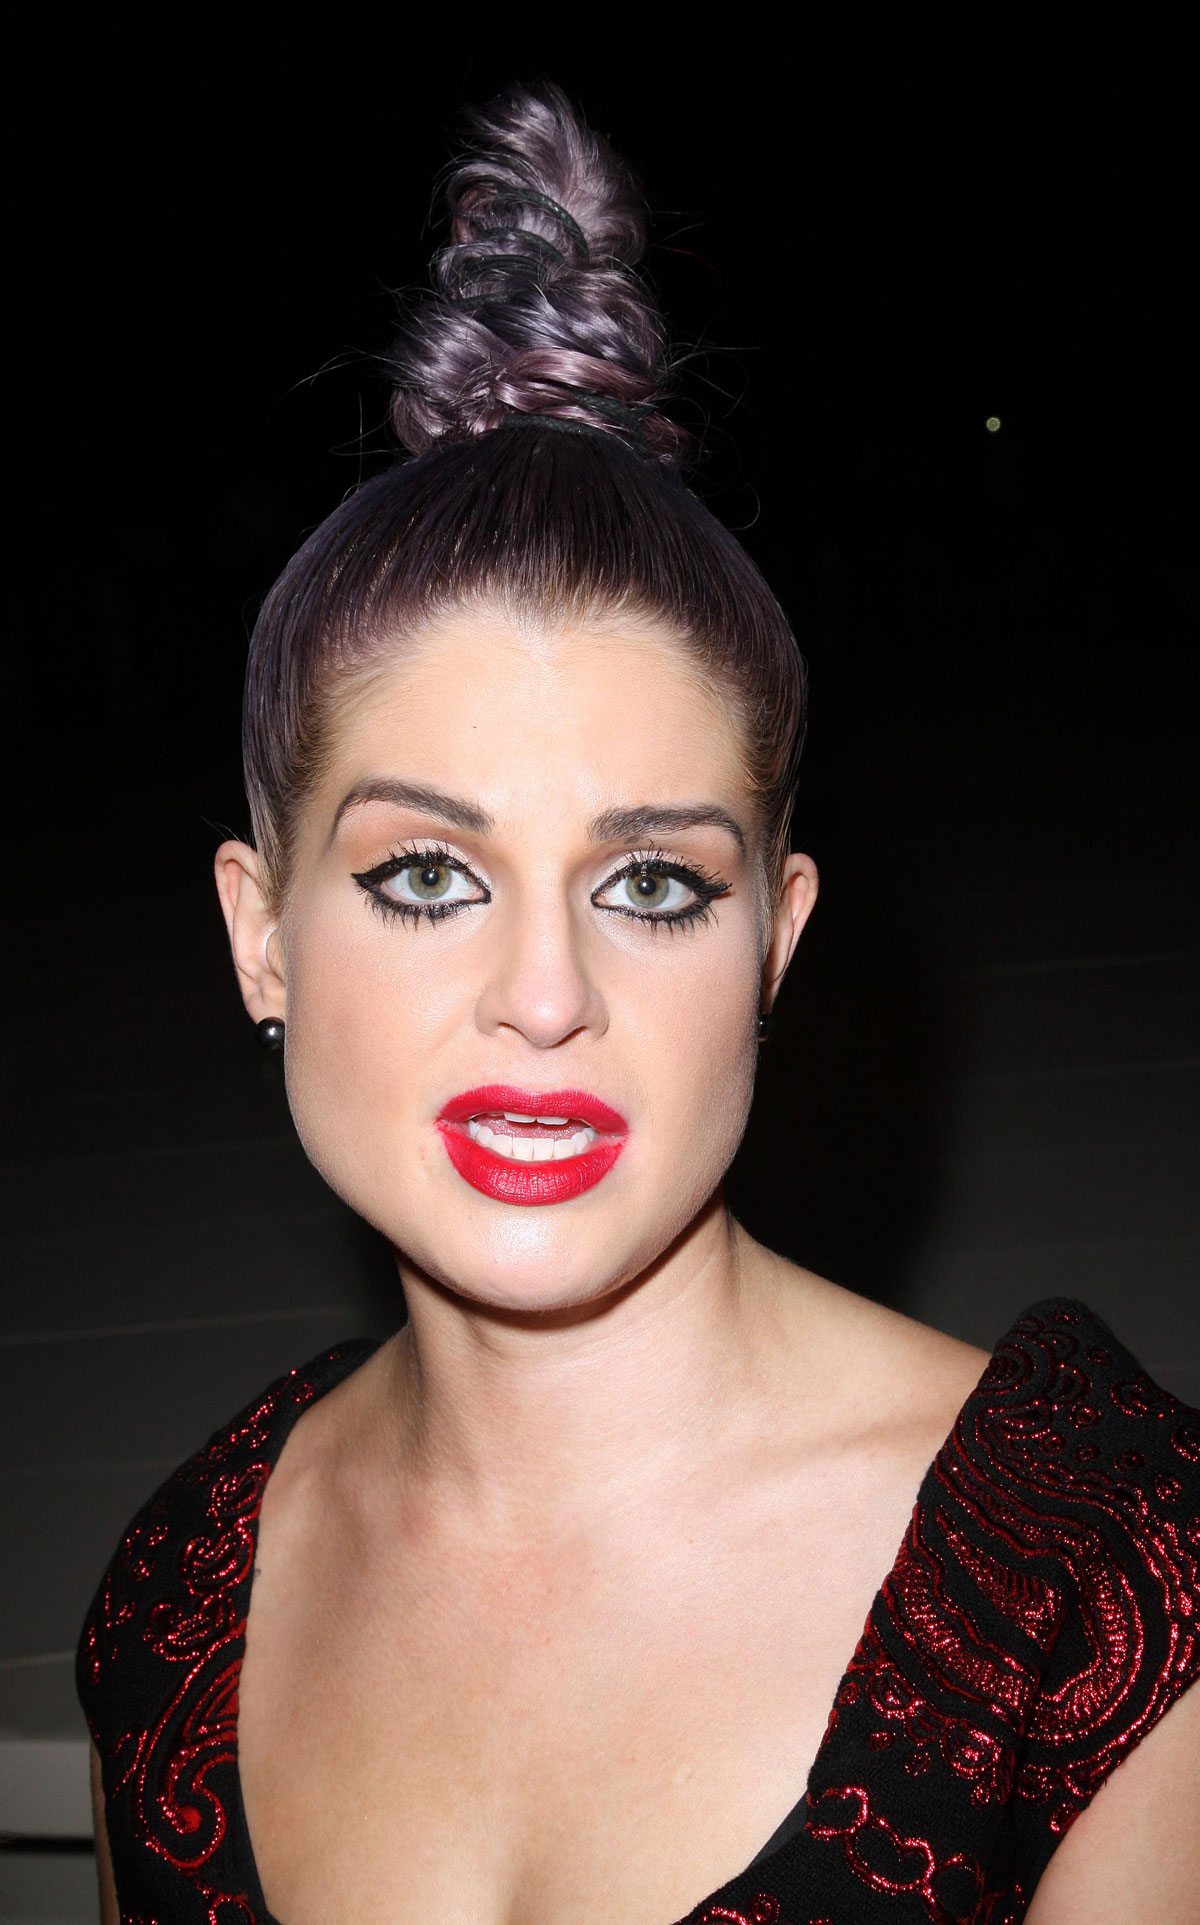 KELLY OSBOURNE at Marc Jacobs Fashion Show in New York ...Kelly Osbourne Age